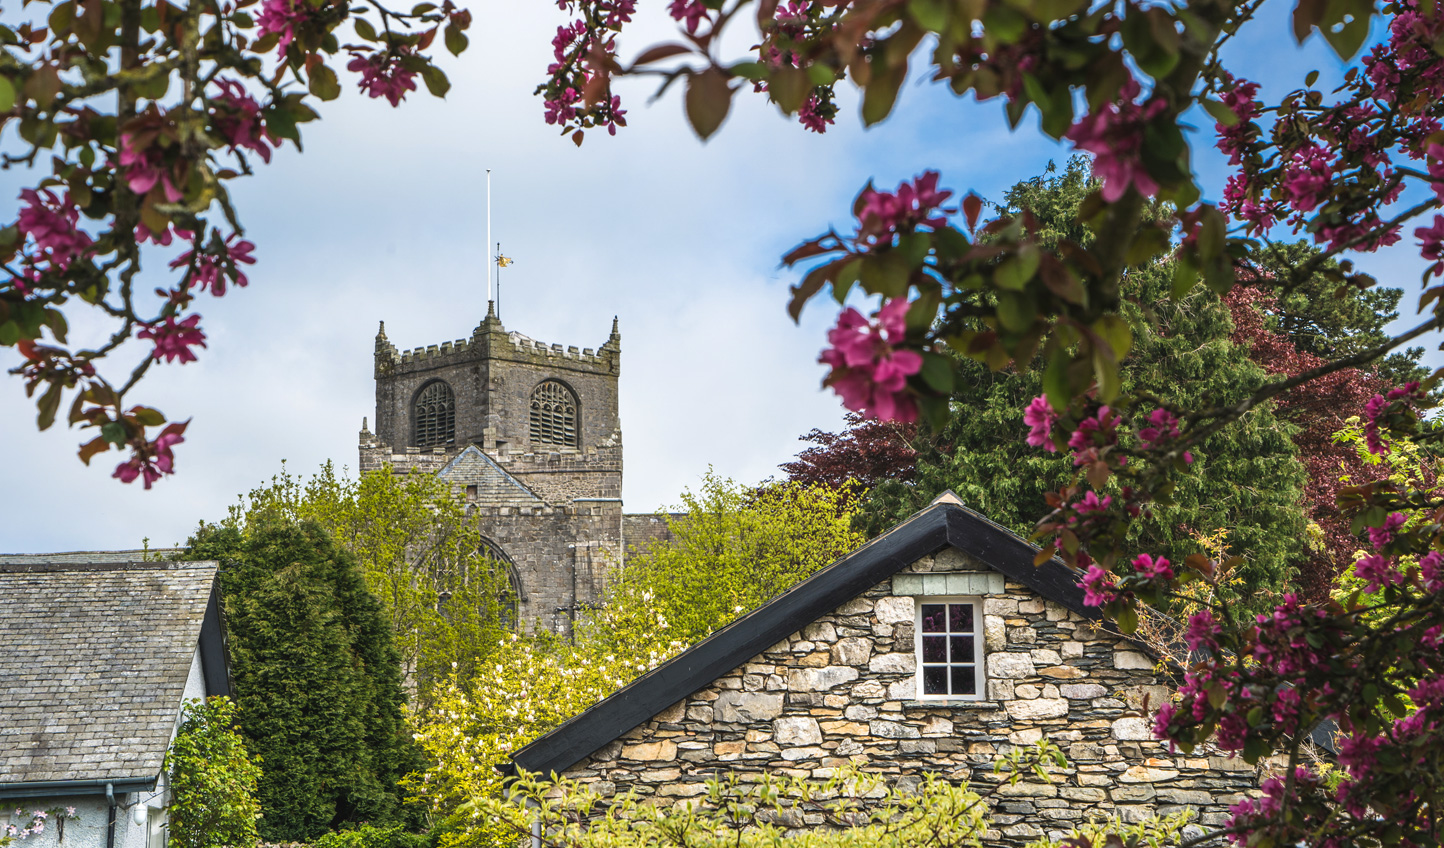 Escape to the quaint village of Cartmel